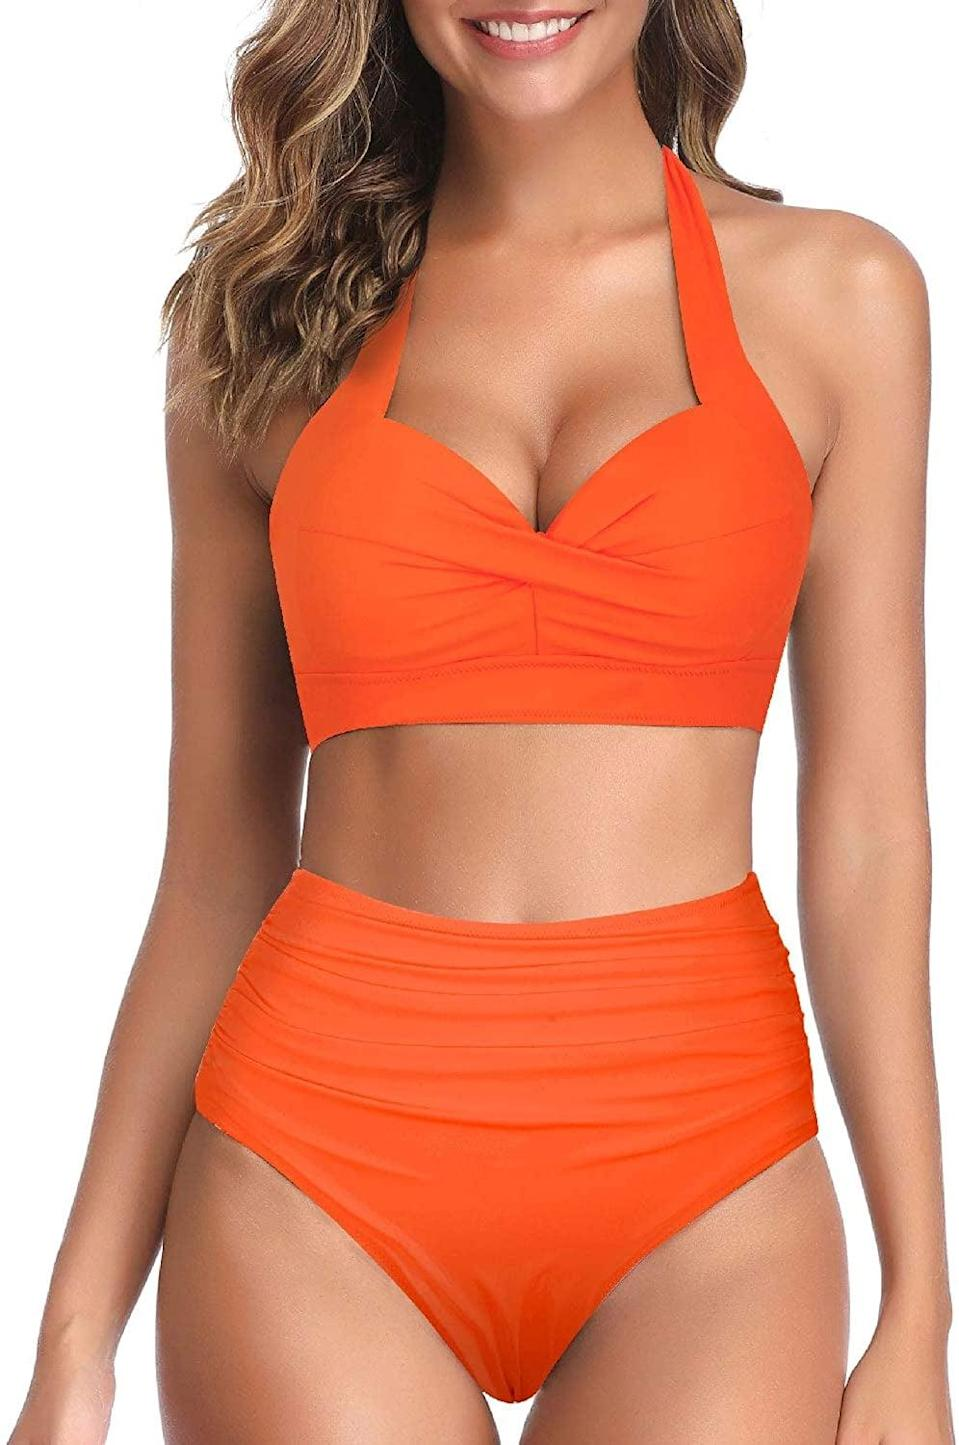 <p>This <span>Tempt Me Two Piece Retro Halter Ruched High Waist Bikini</span> ($32, originally $36) will provide ample coverage, while still looking sexy.</p>